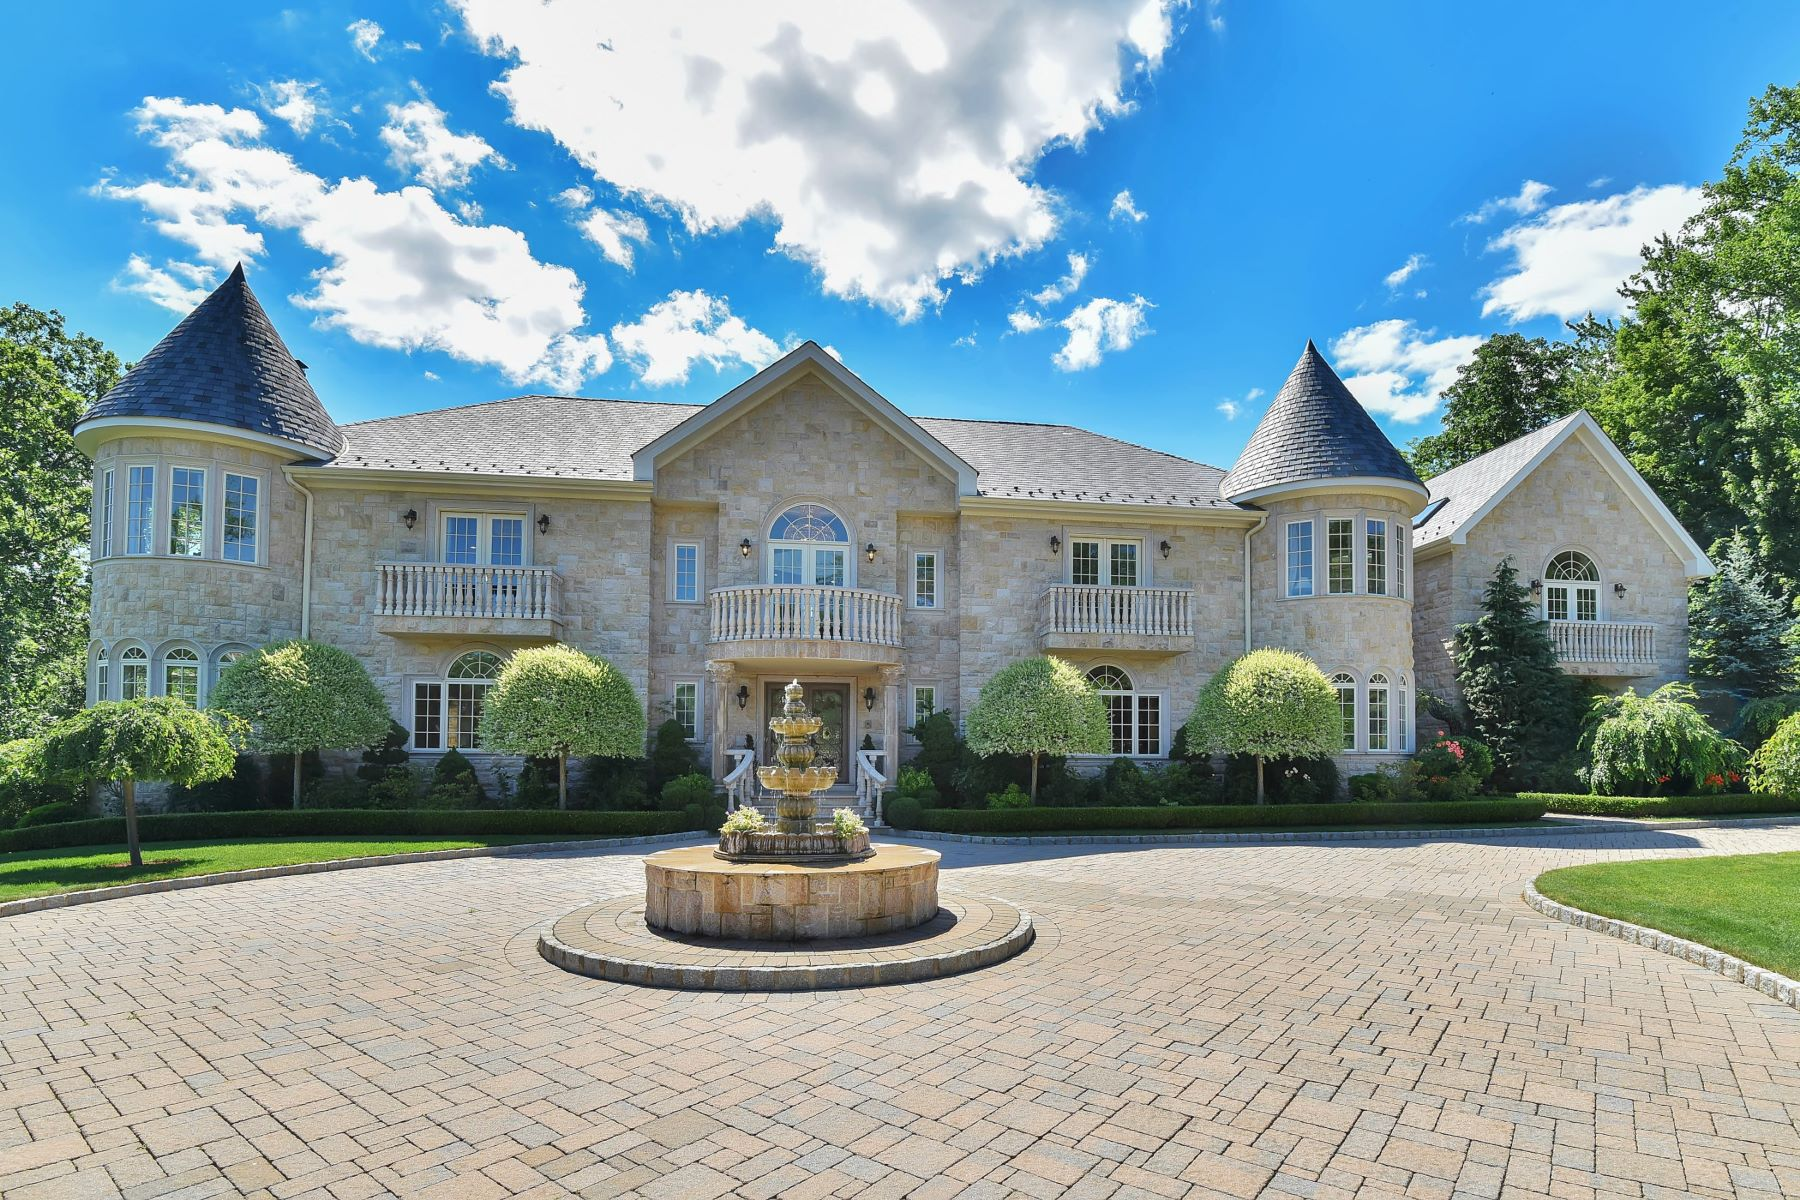 Single Family Home for Sale at BRAMSHILL MANOR 33 Brams Hill Drive Mahwah, 07430 United States